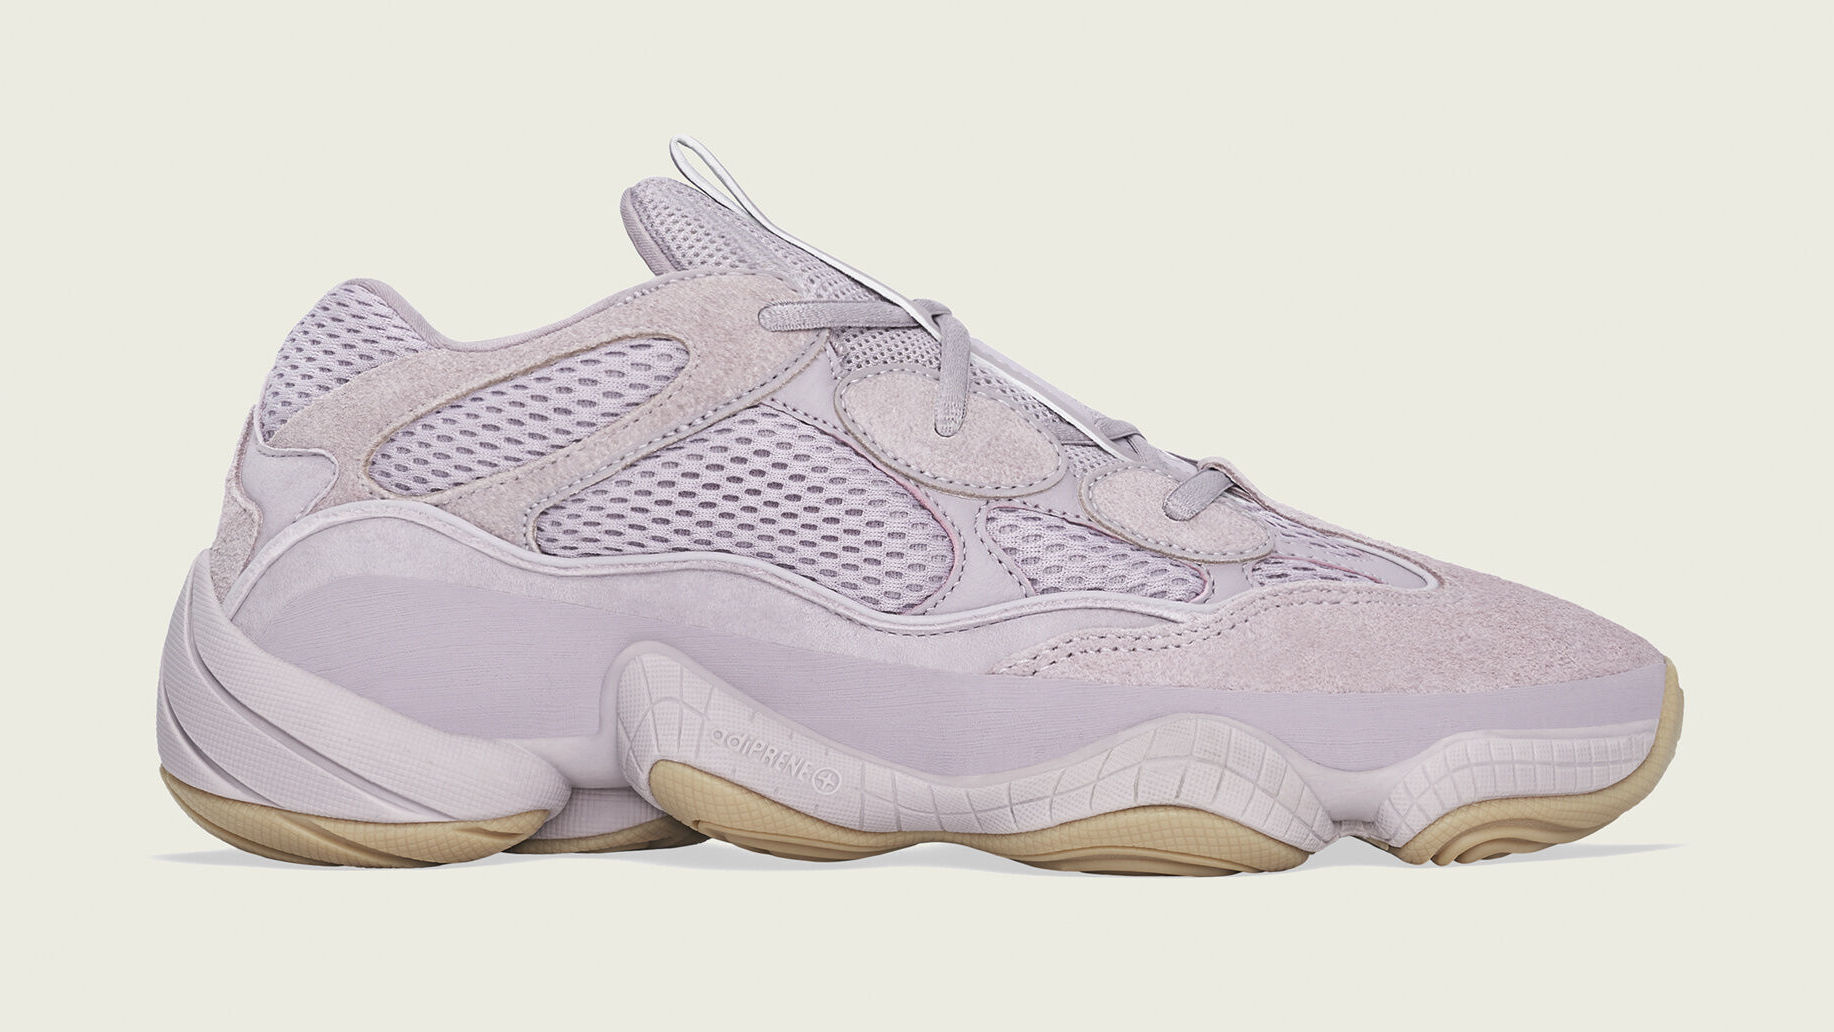 Best Look Yet at the Adidas Yeezy 500 'Soft Vision'